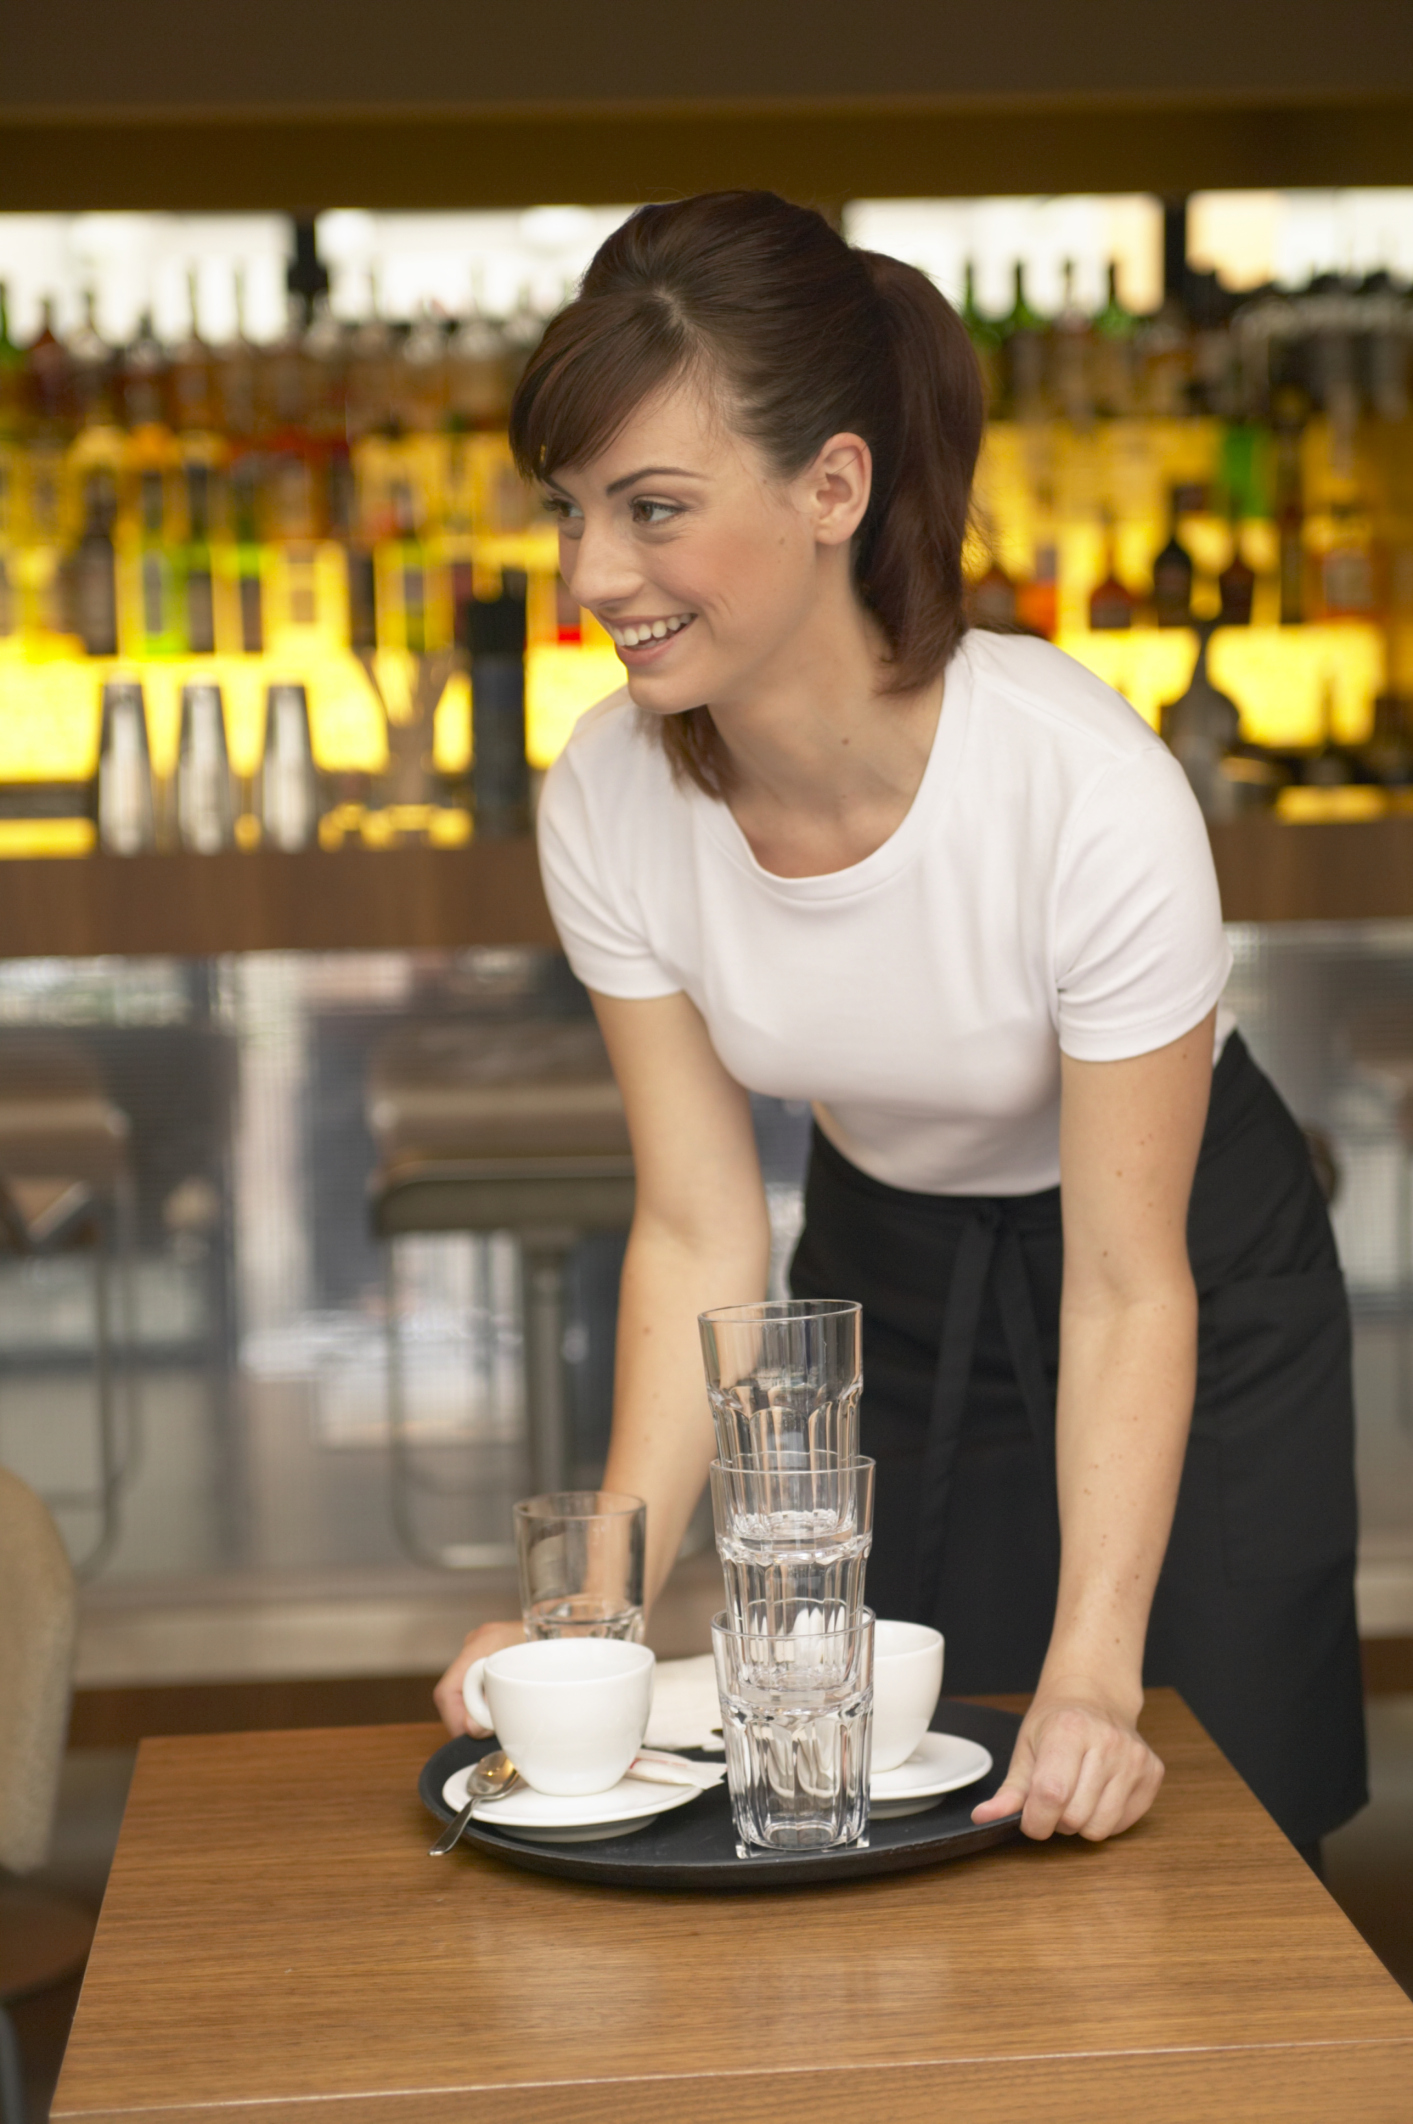 How to Be a Waiter Without Experience | Career Trend